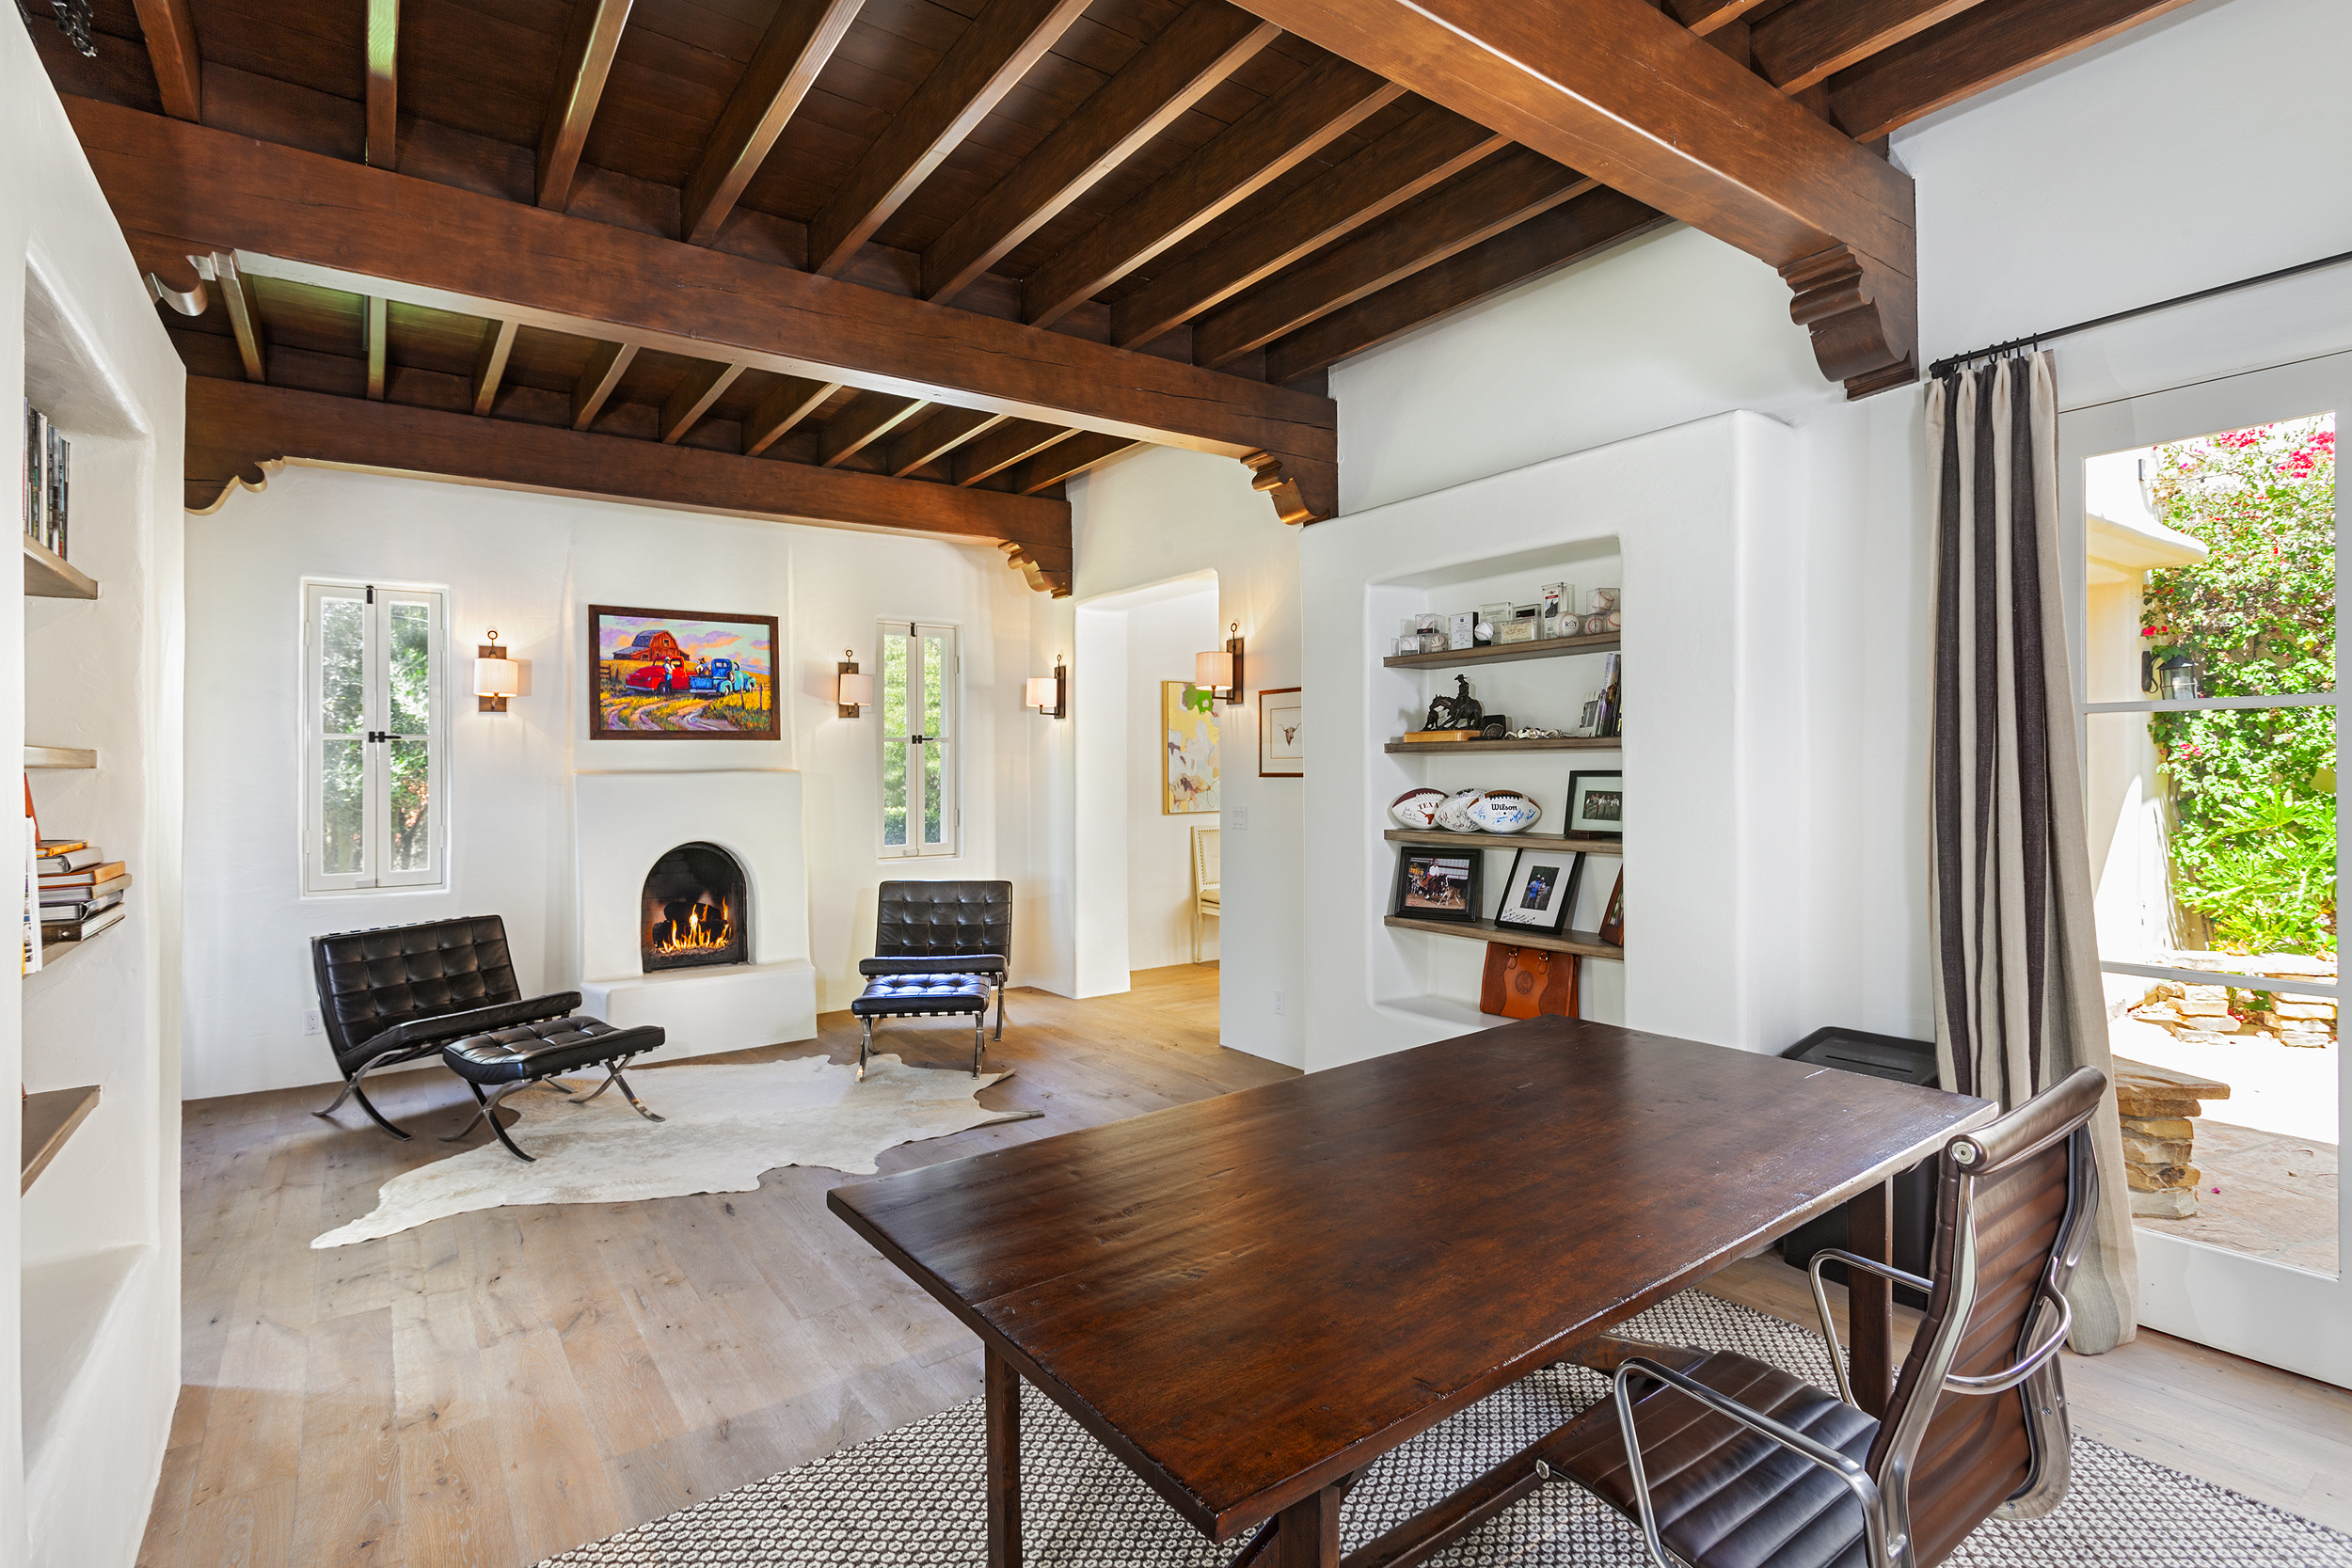 Sold 2019 Laura Represented Seller -  Rancho Santa Fe, CA 92067